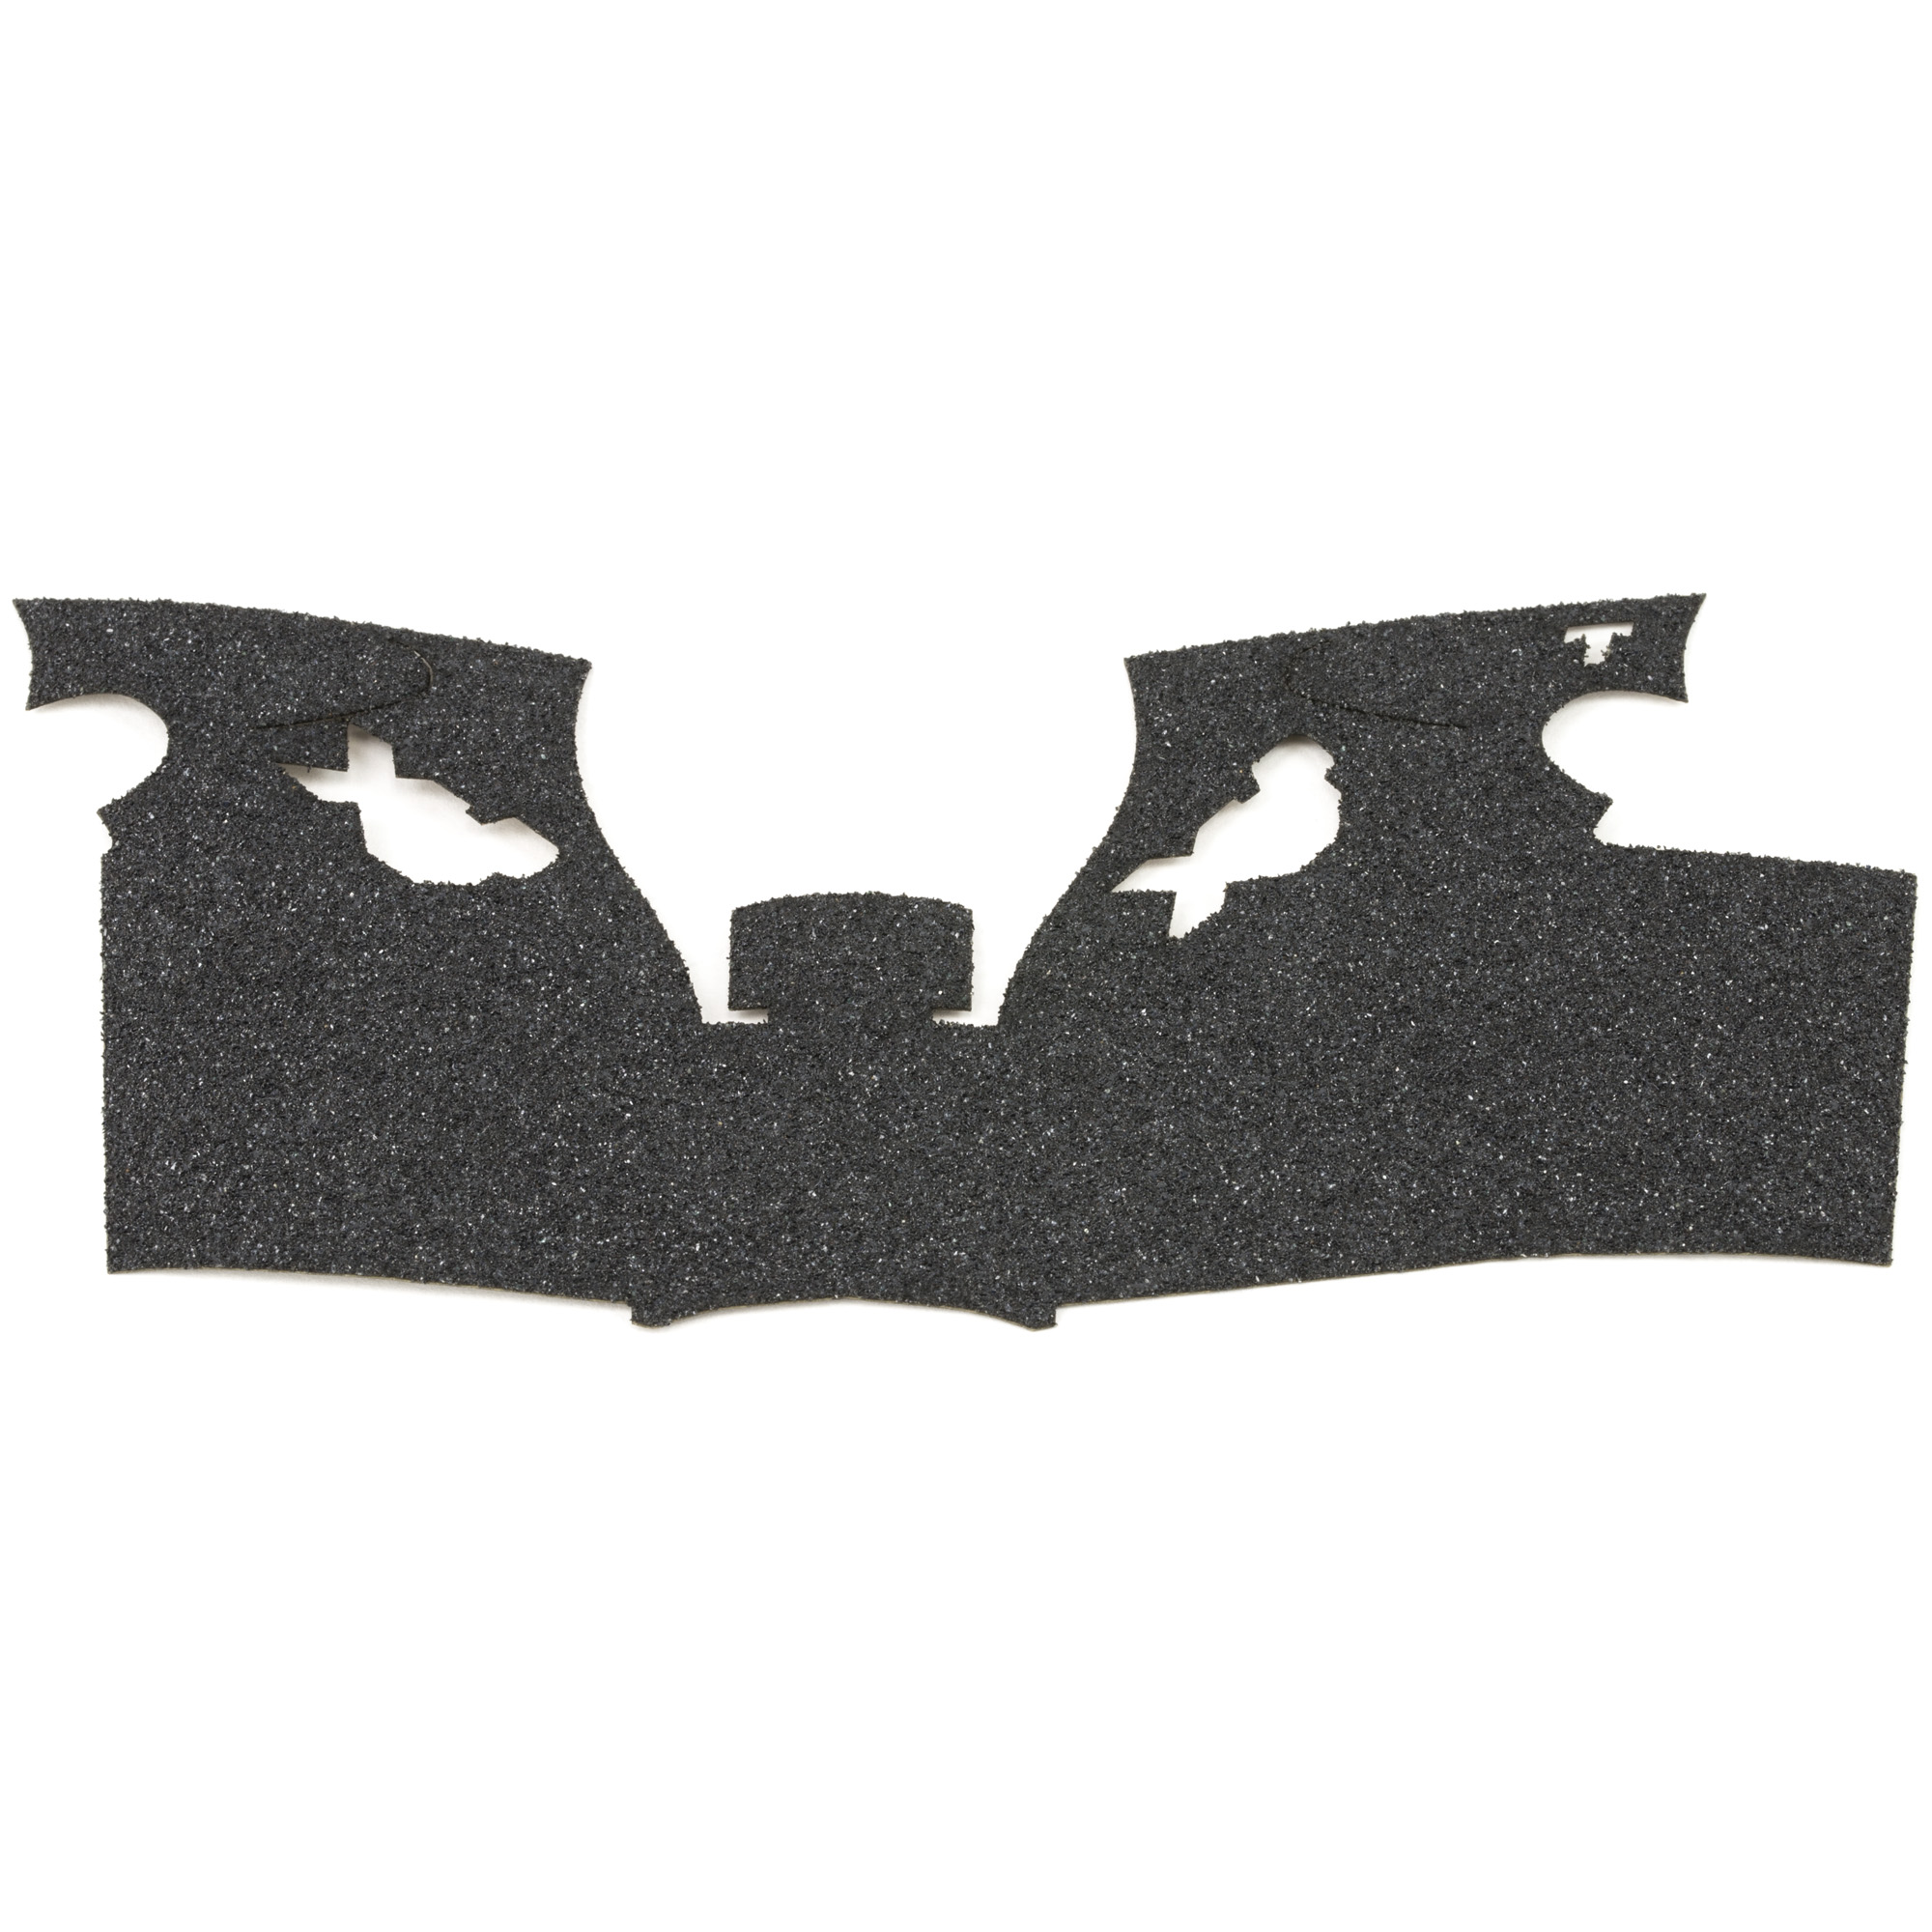 """TALON Grips for Springfield XD-S 9mm"""" .40 and .45 ACP single stack models with the 3.3"""" and 4.0"""" barrel with a Small Backstrap. This rear wrap grip is in the granulate texture and offers full side panel coverage including the thumb rest area"""" full coverage under the trigger guard"""" and full coverage on the backstrap. There are cutouts on the grip around the XD-S logo. Confirm backstrap size installed on firearm prior to ordering. XD-S Gear Mag X-Tension extended magazine grips and Pearce Magazine Extender grips are available for this model (sold separately)."""